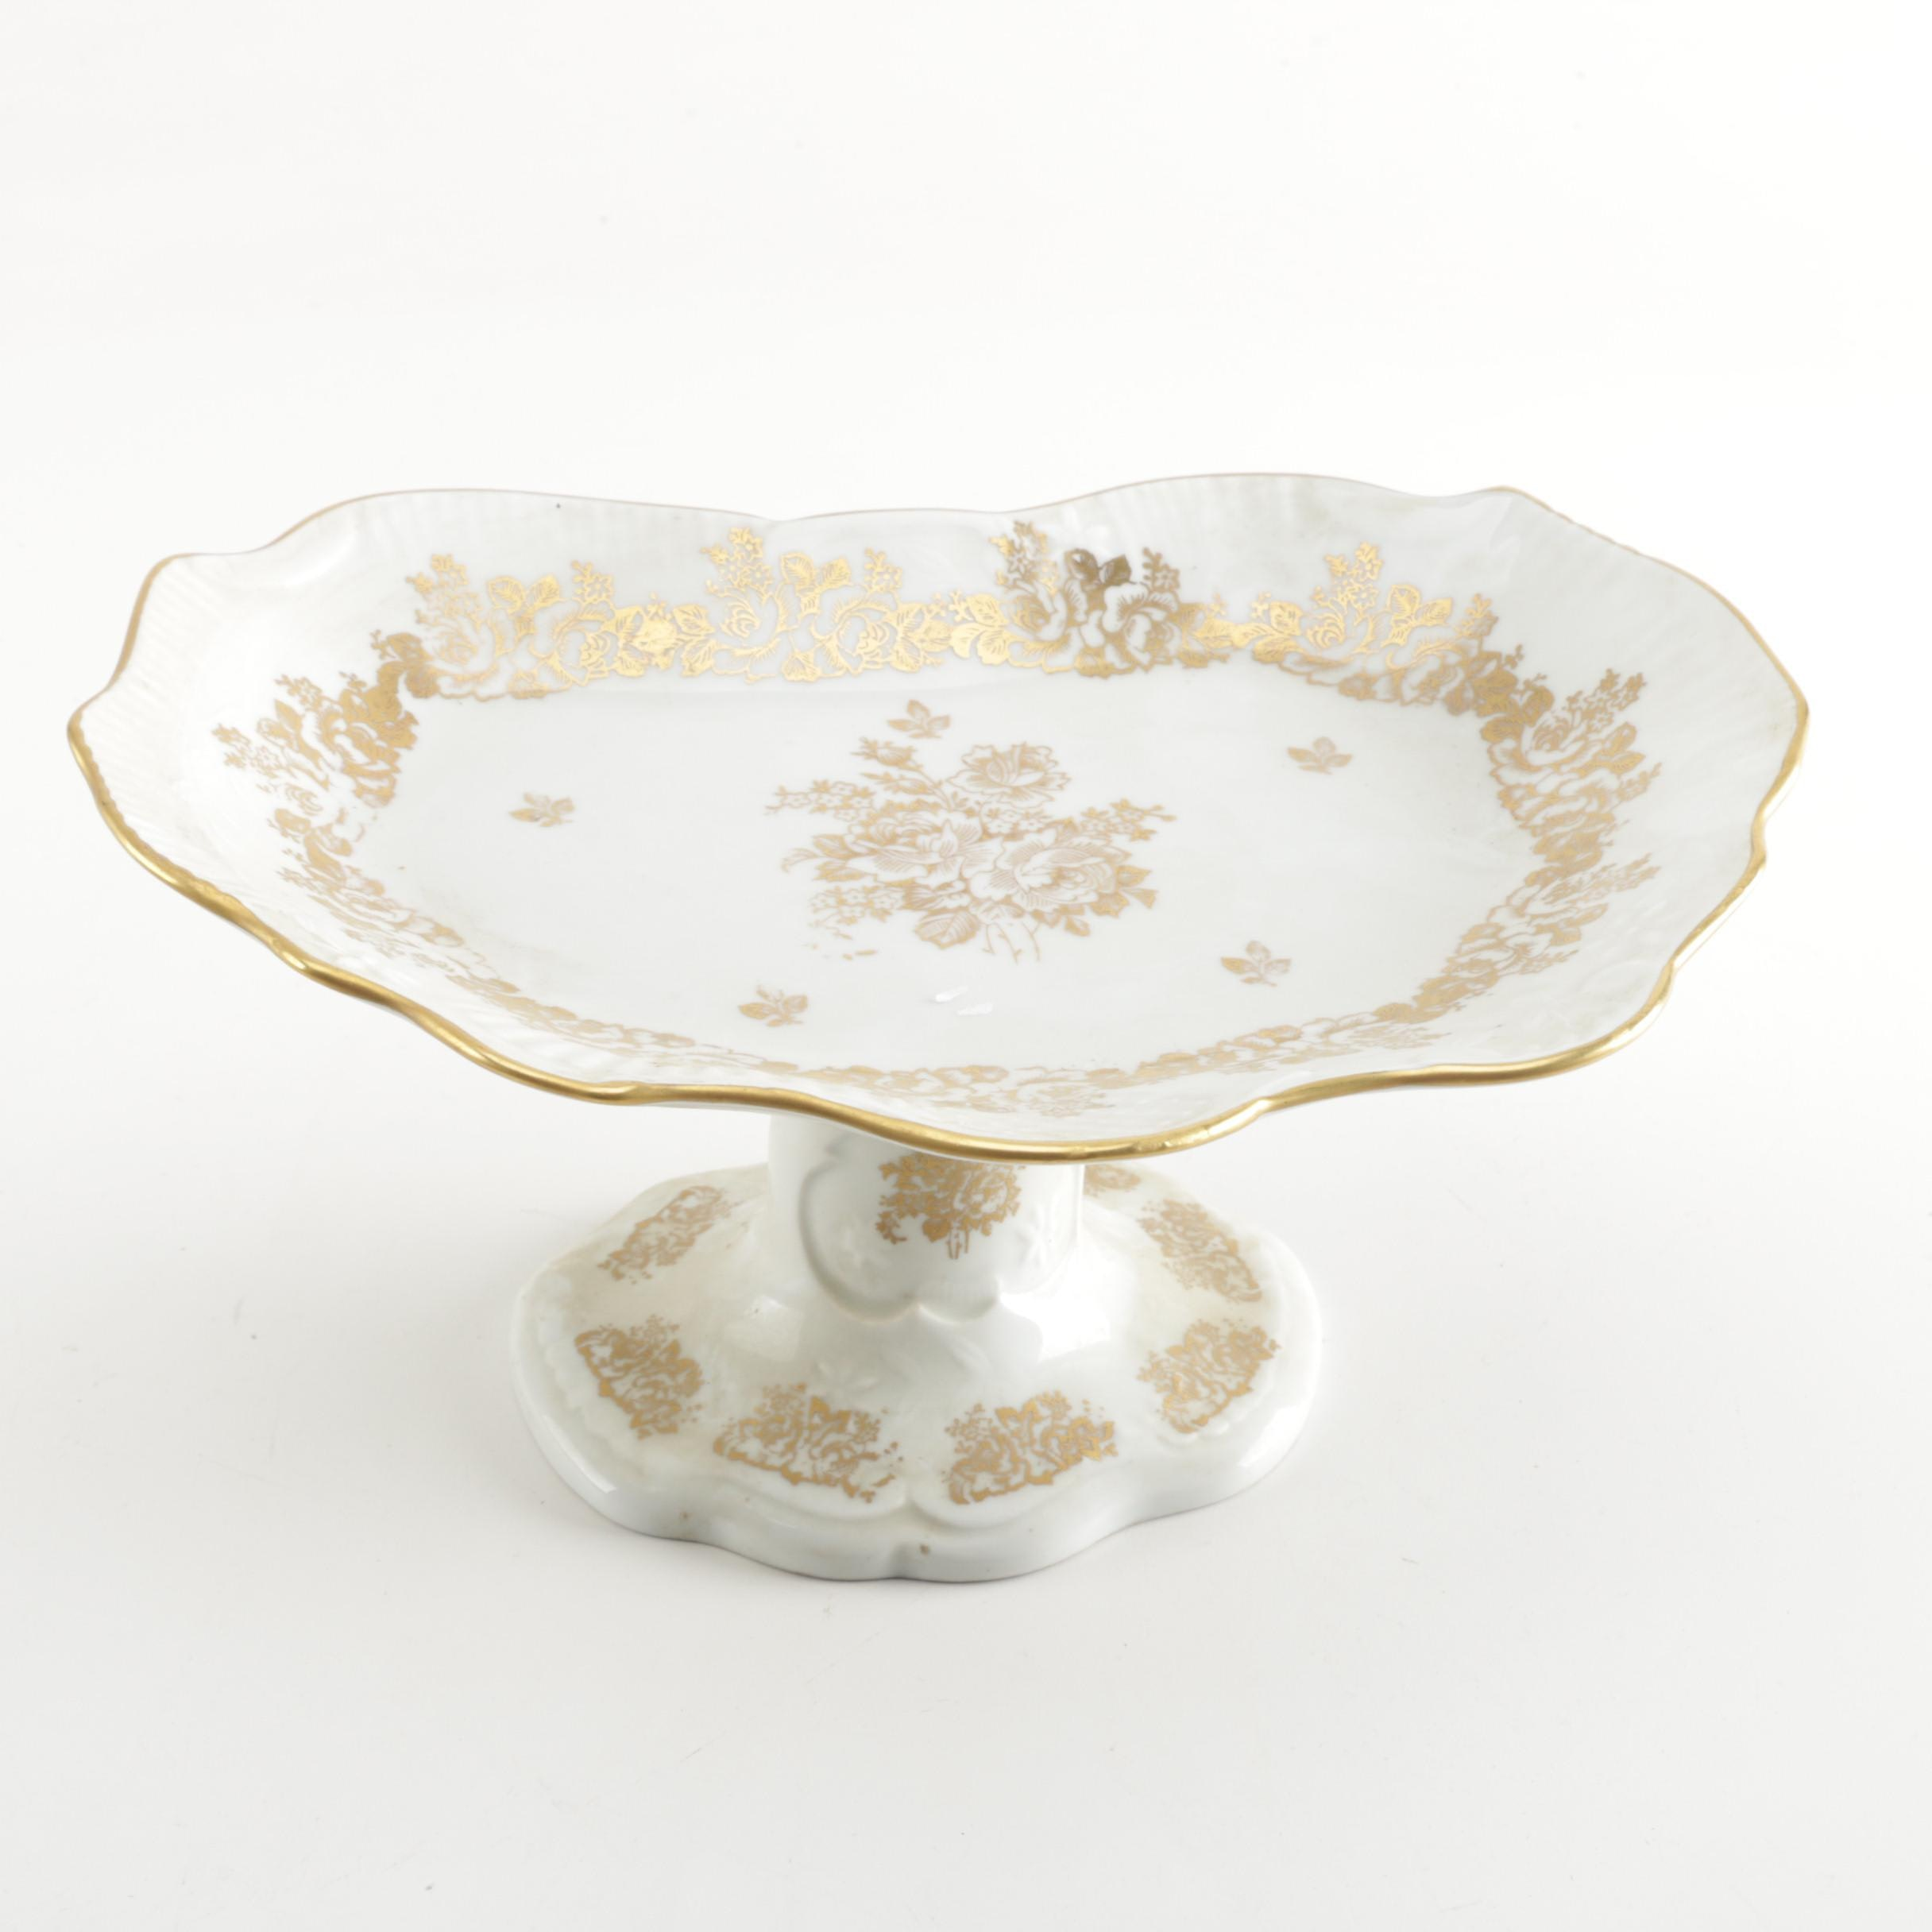 Vintage Hand-Painted Porcelain Dish with Gold-Tone Roses